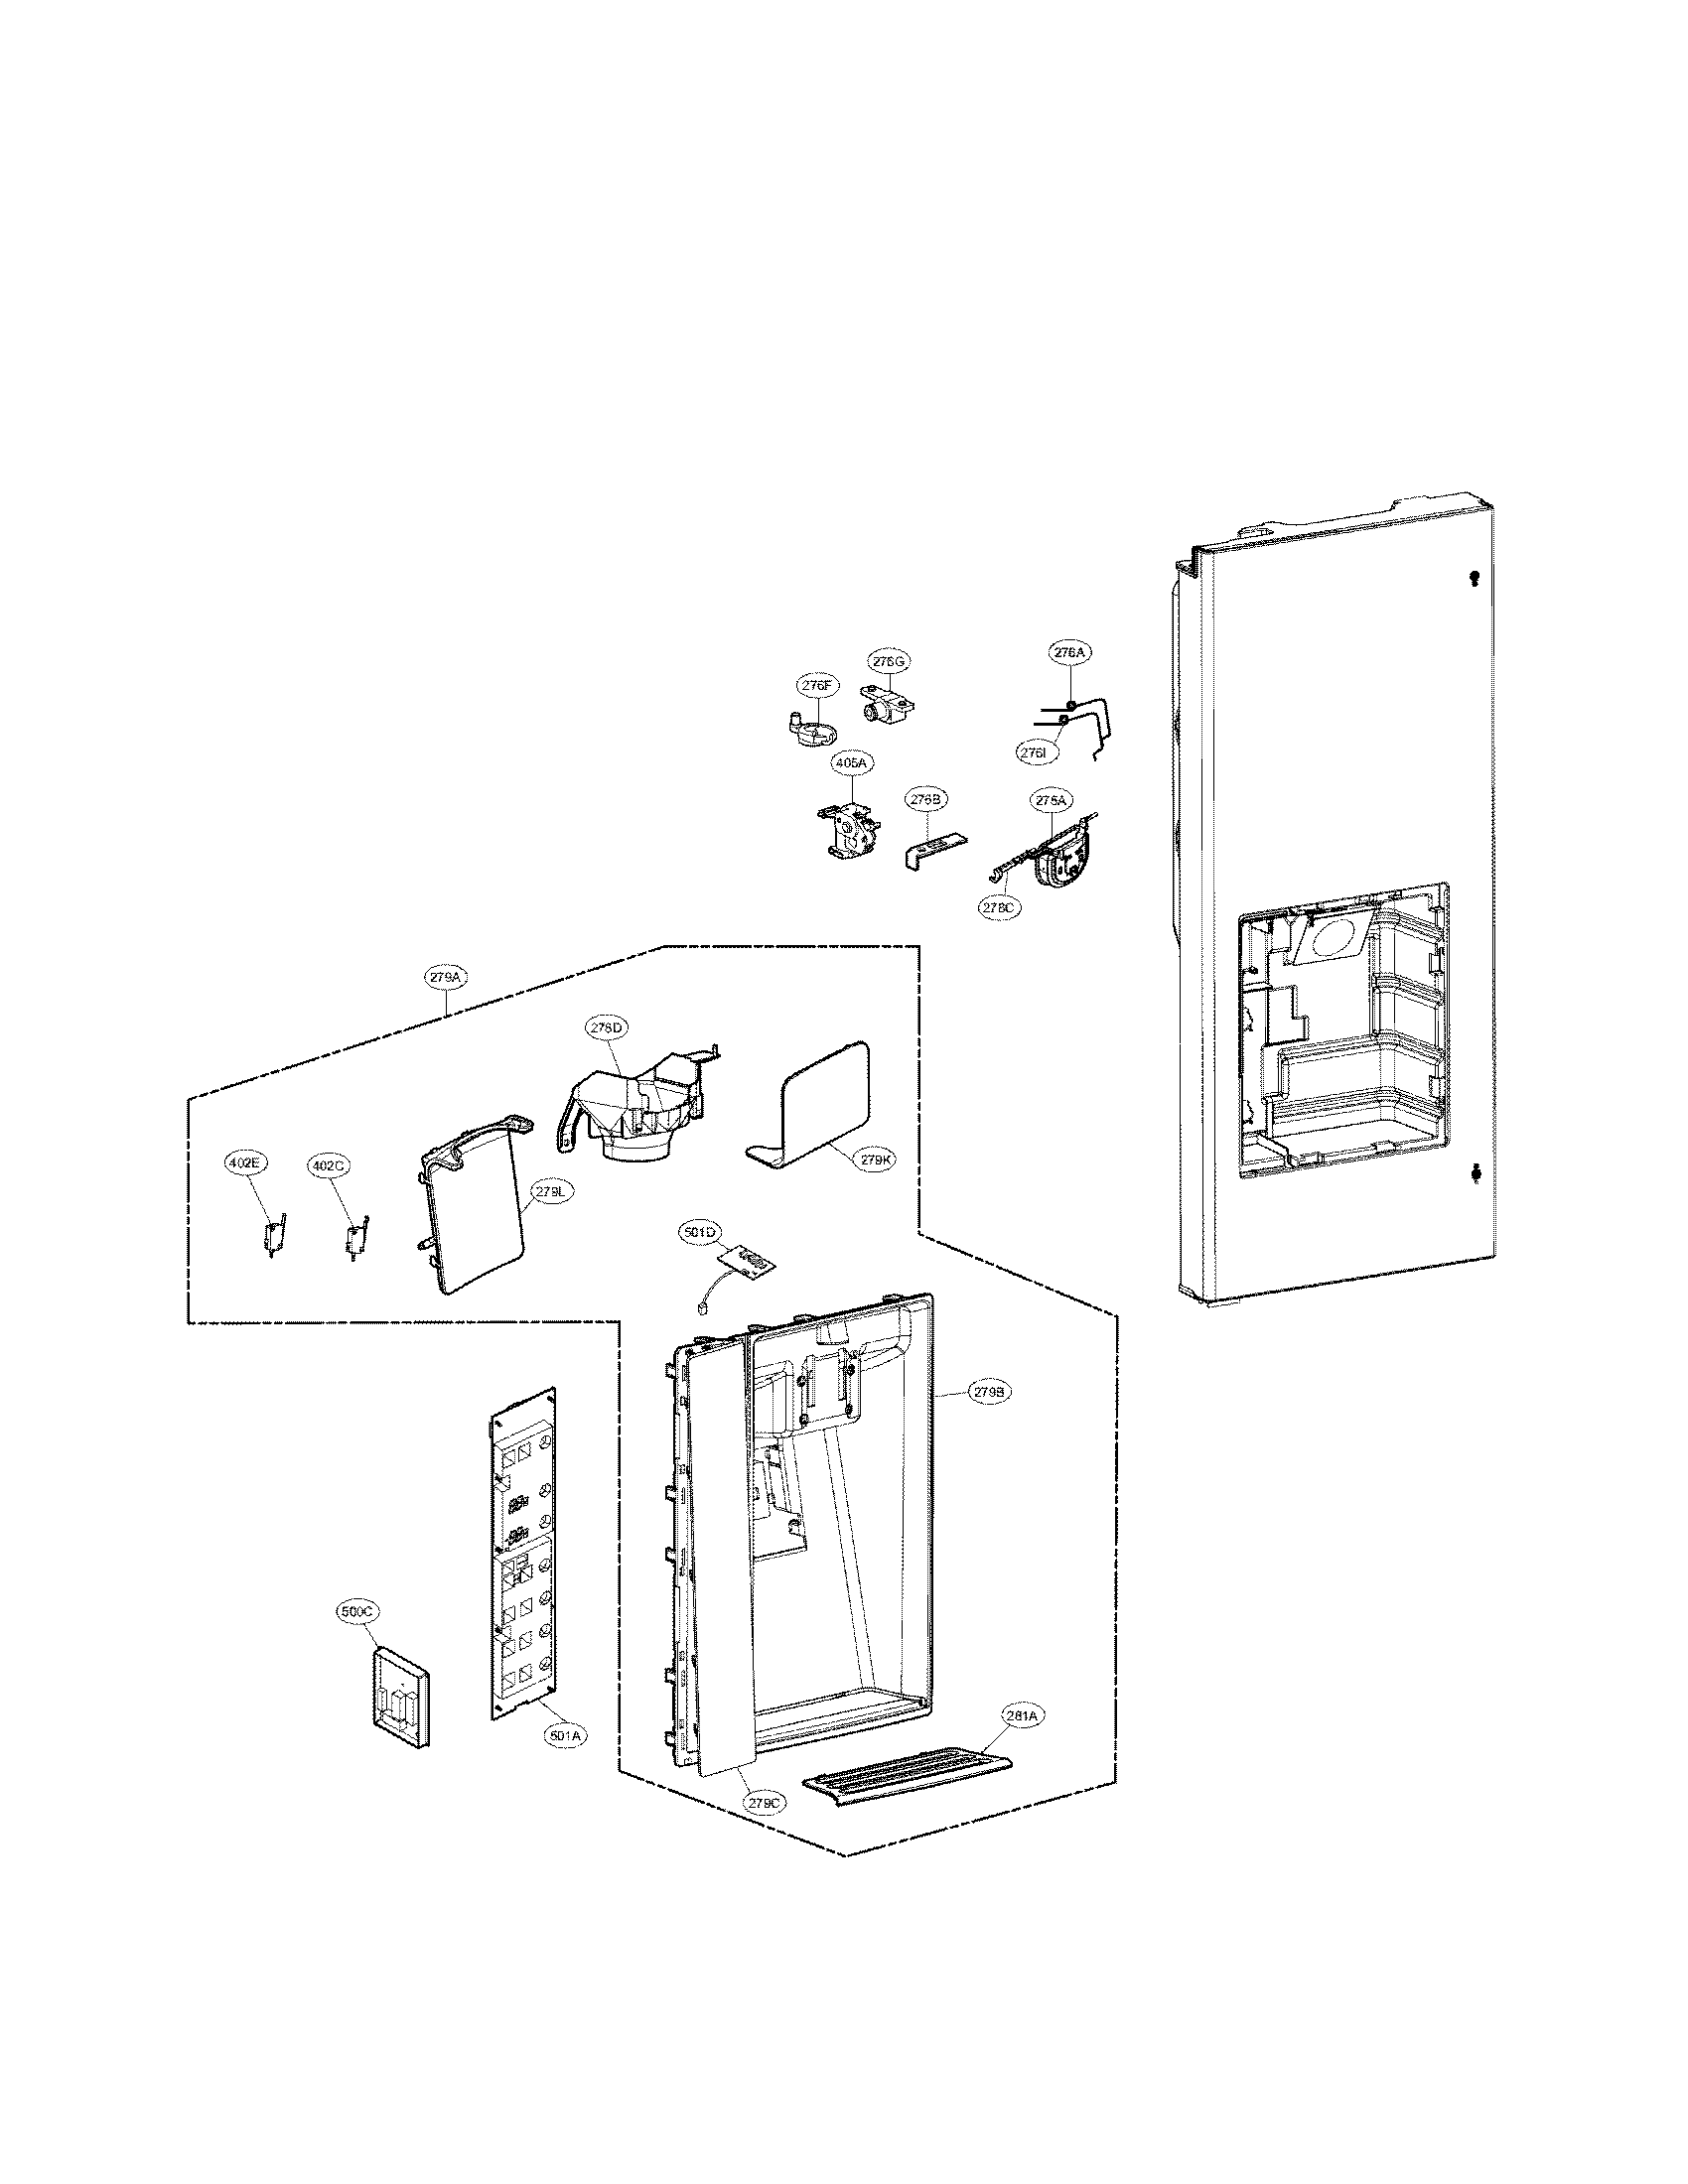 Lg model LFX31945ST bottom-mount refrigerator genuine parts